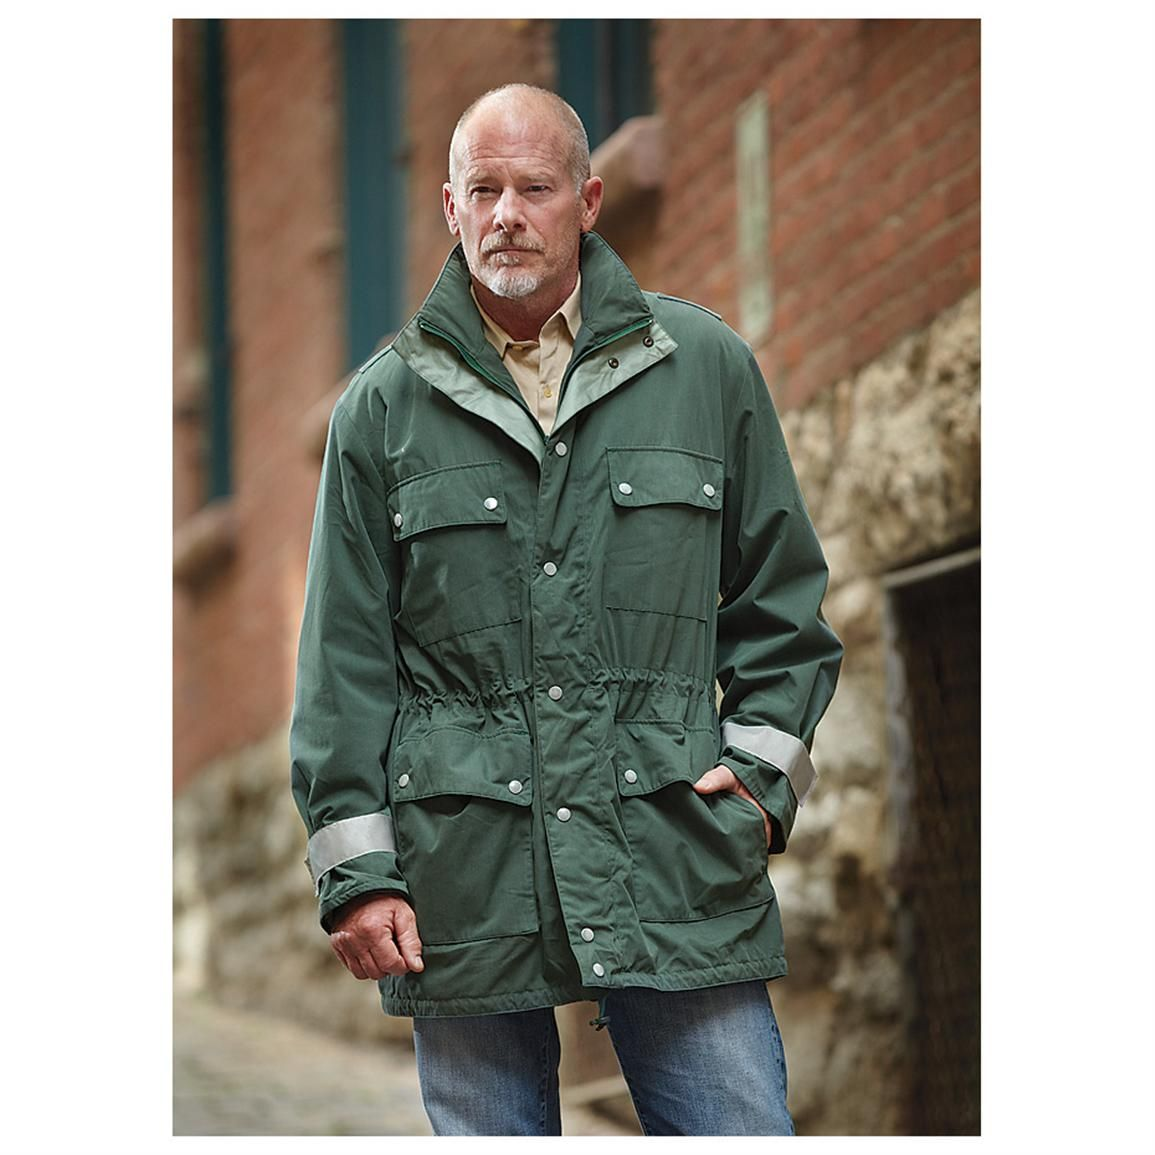 2bb46971a8823 German Police Men's GORE-TEX Winter Parka with Liner, Waterproof, Olive Drab